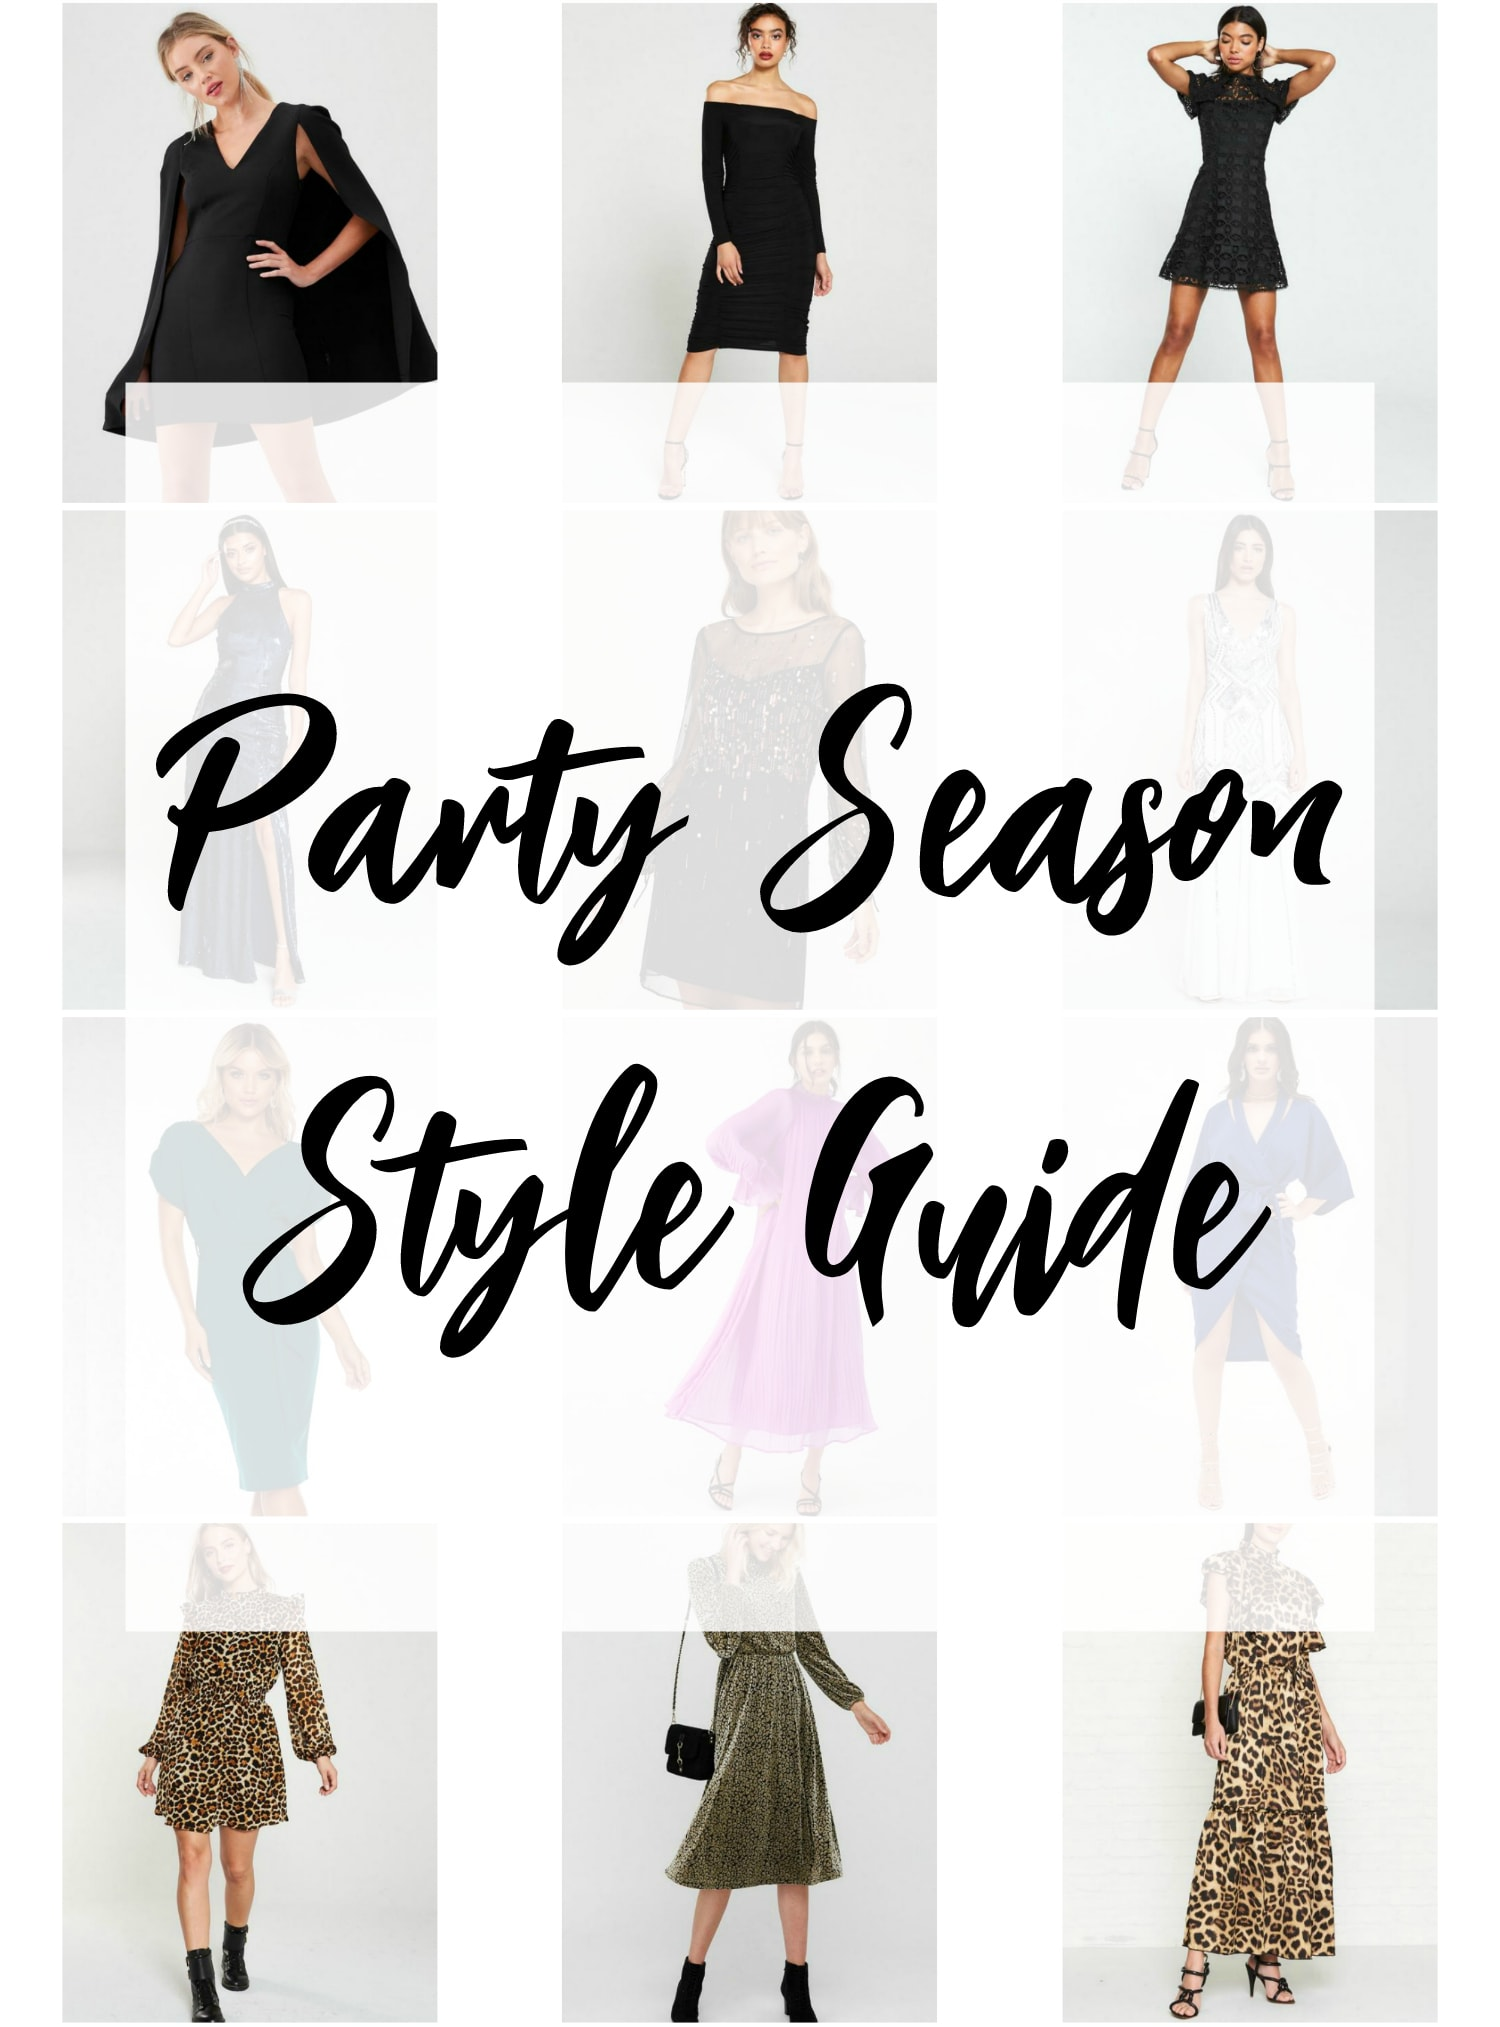 Party Season Style Guide